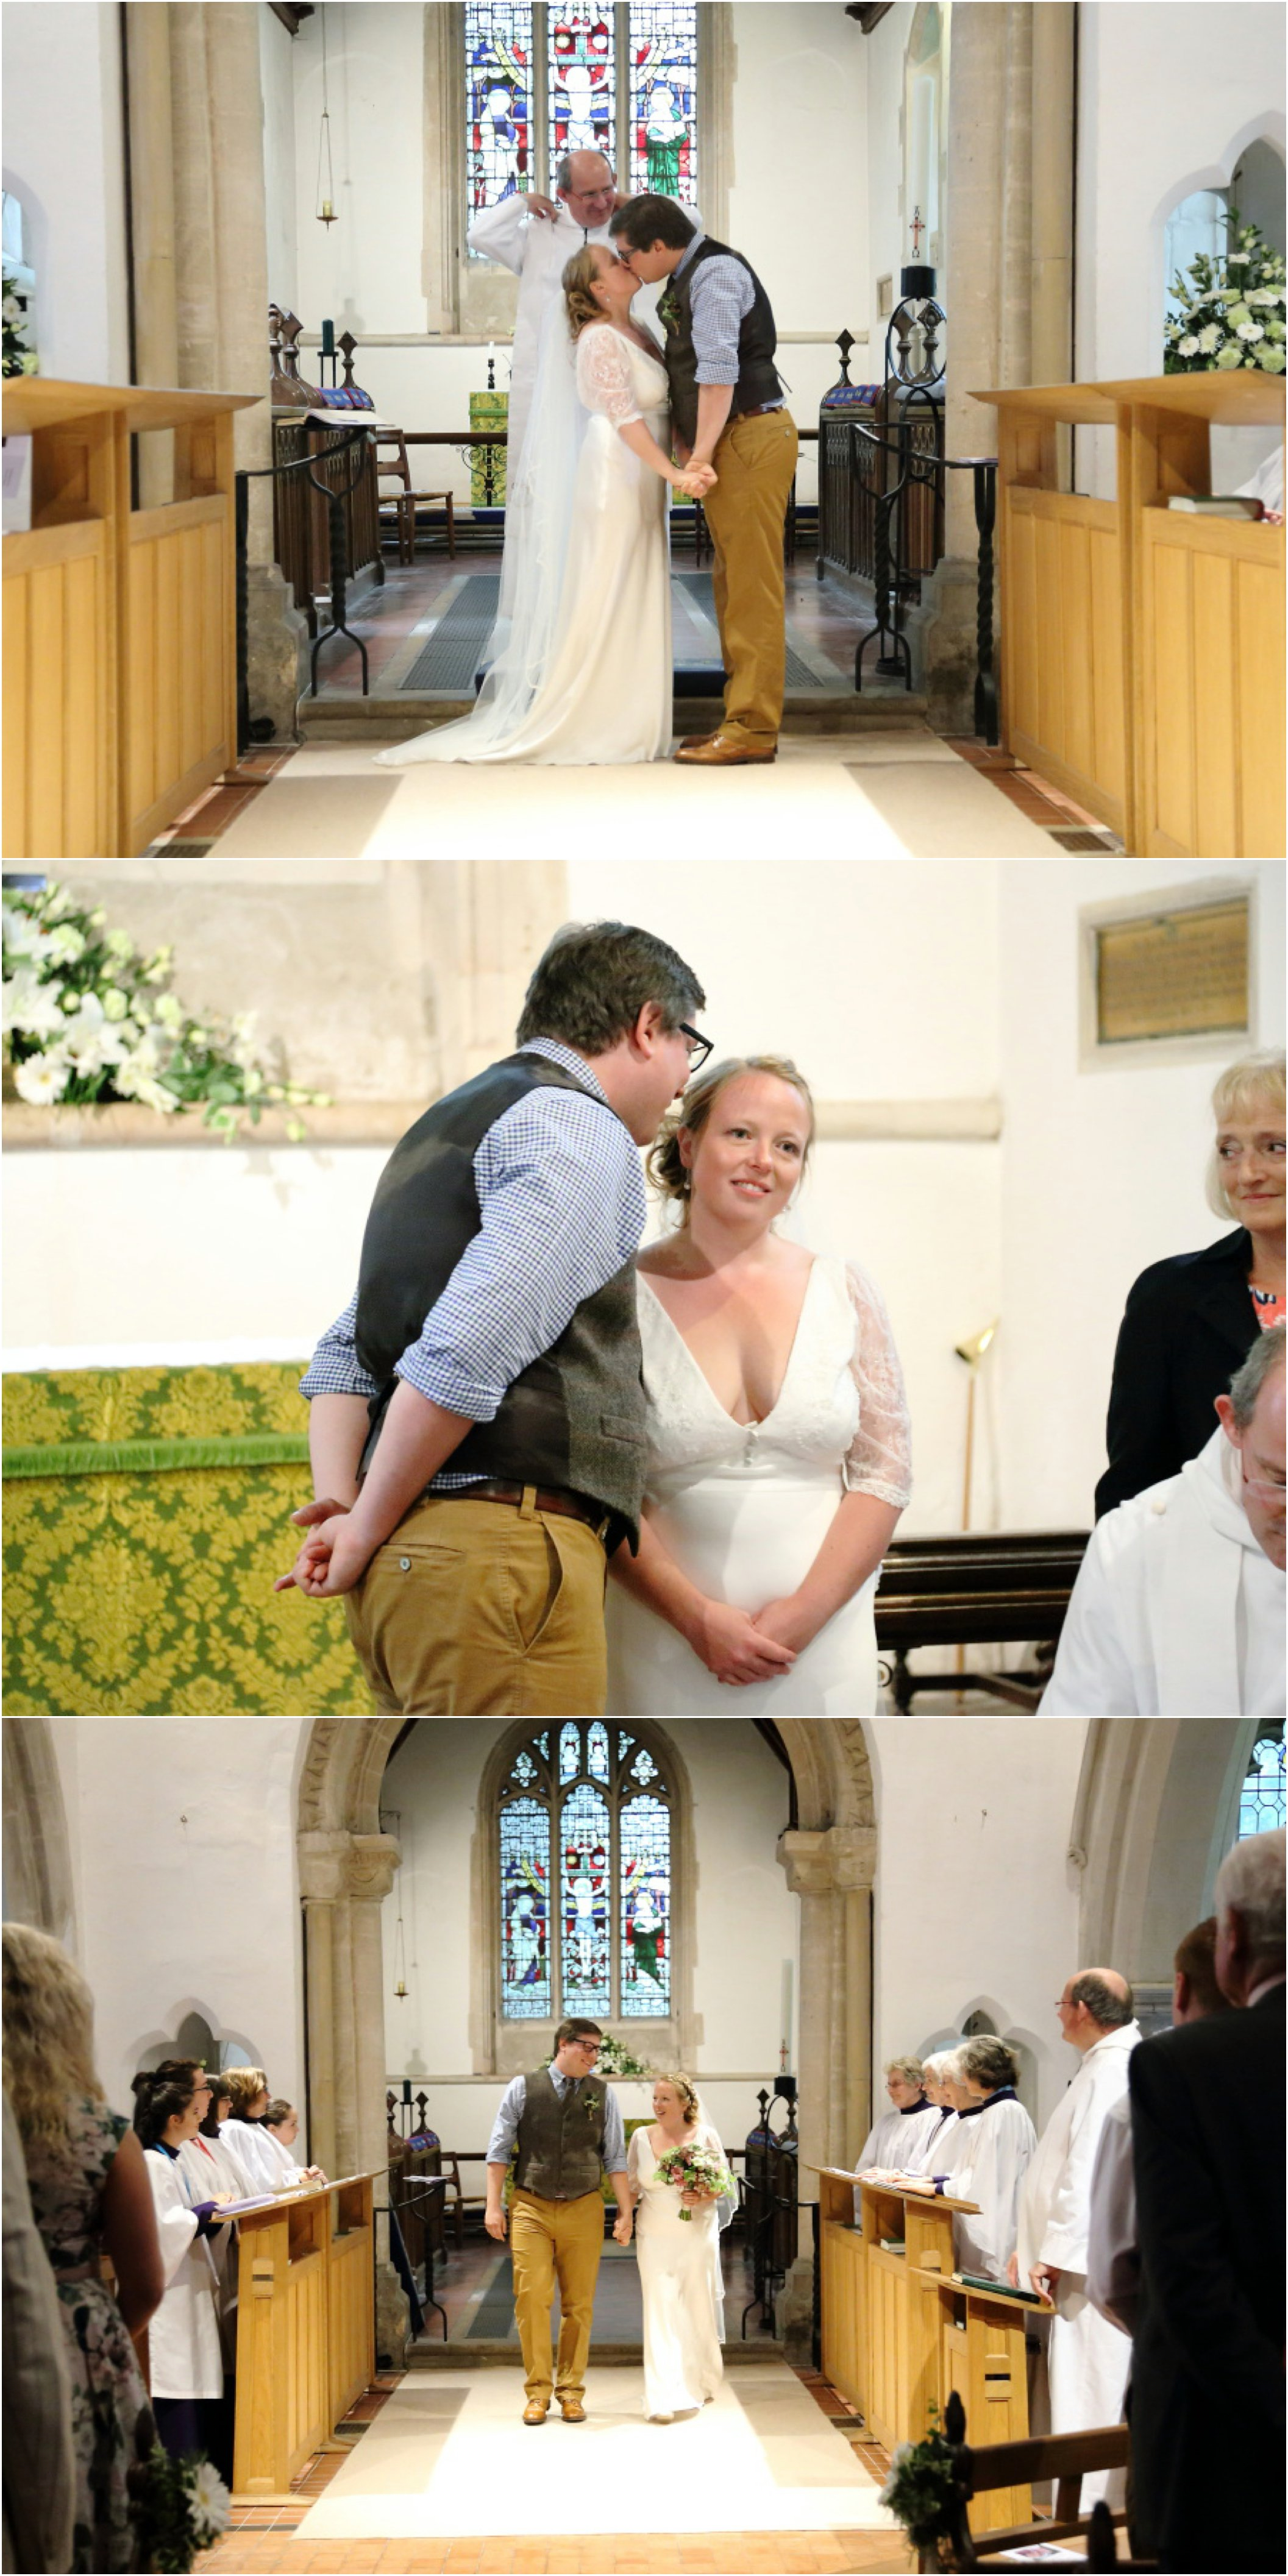 relaxed wedding at Stapleford church, cambridge